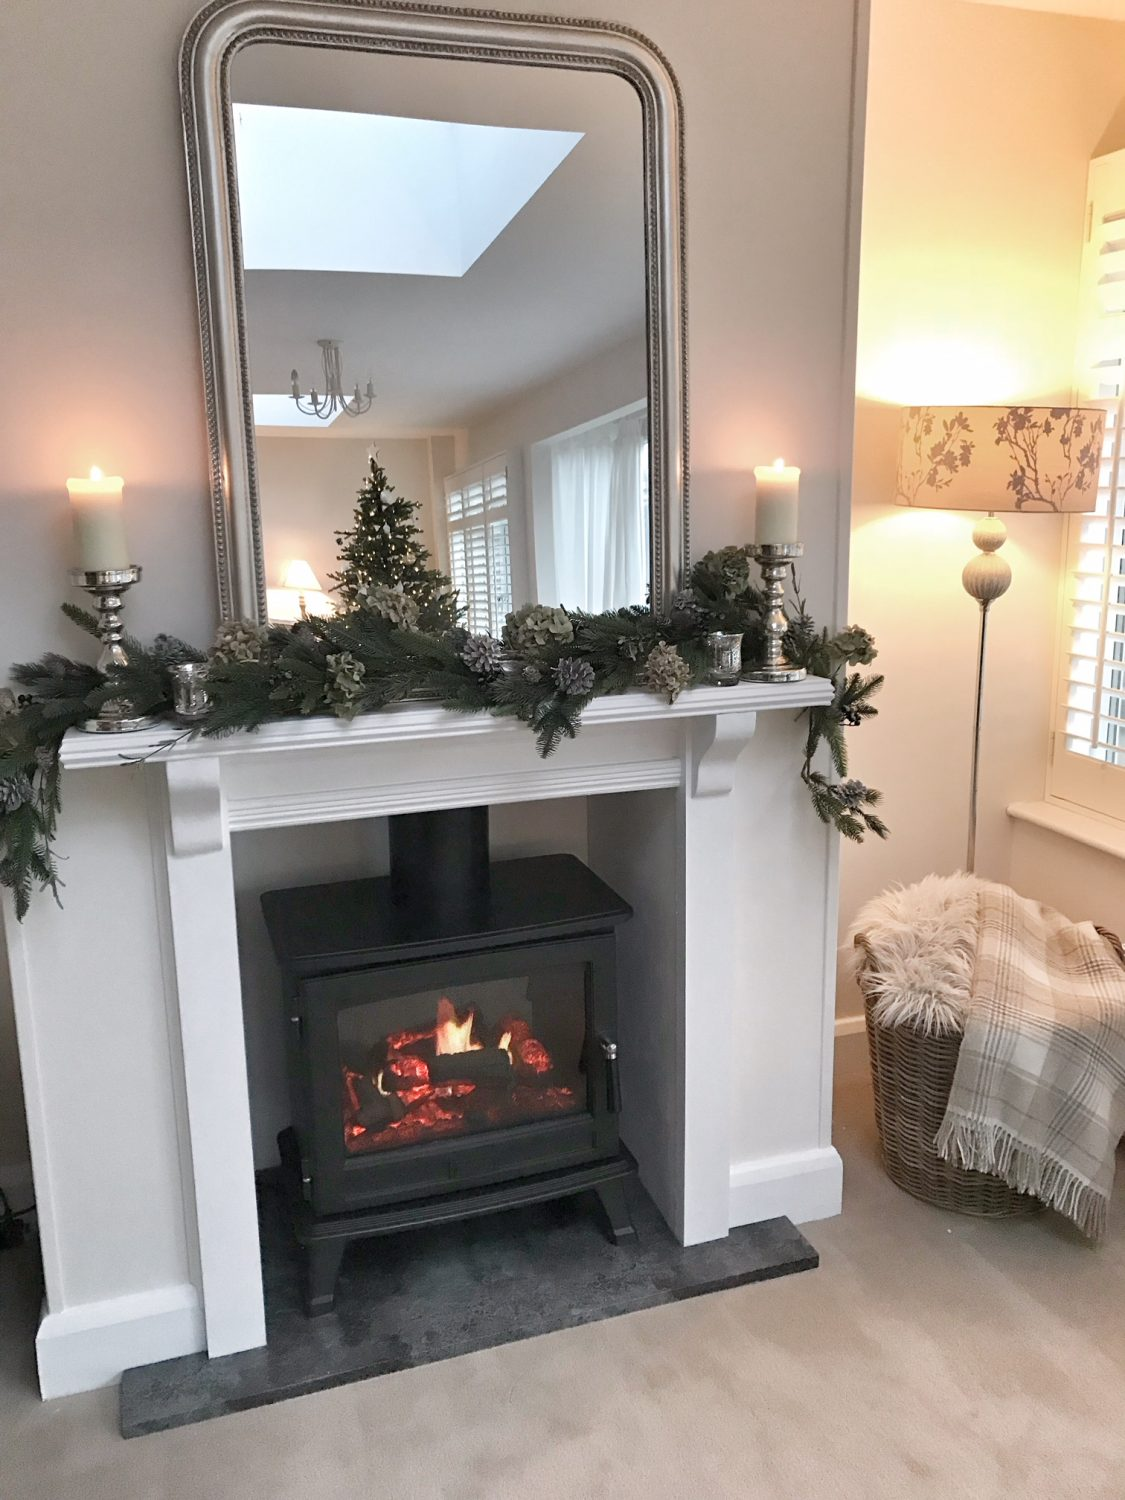 False Fireplace Installation – The Home That Made Me